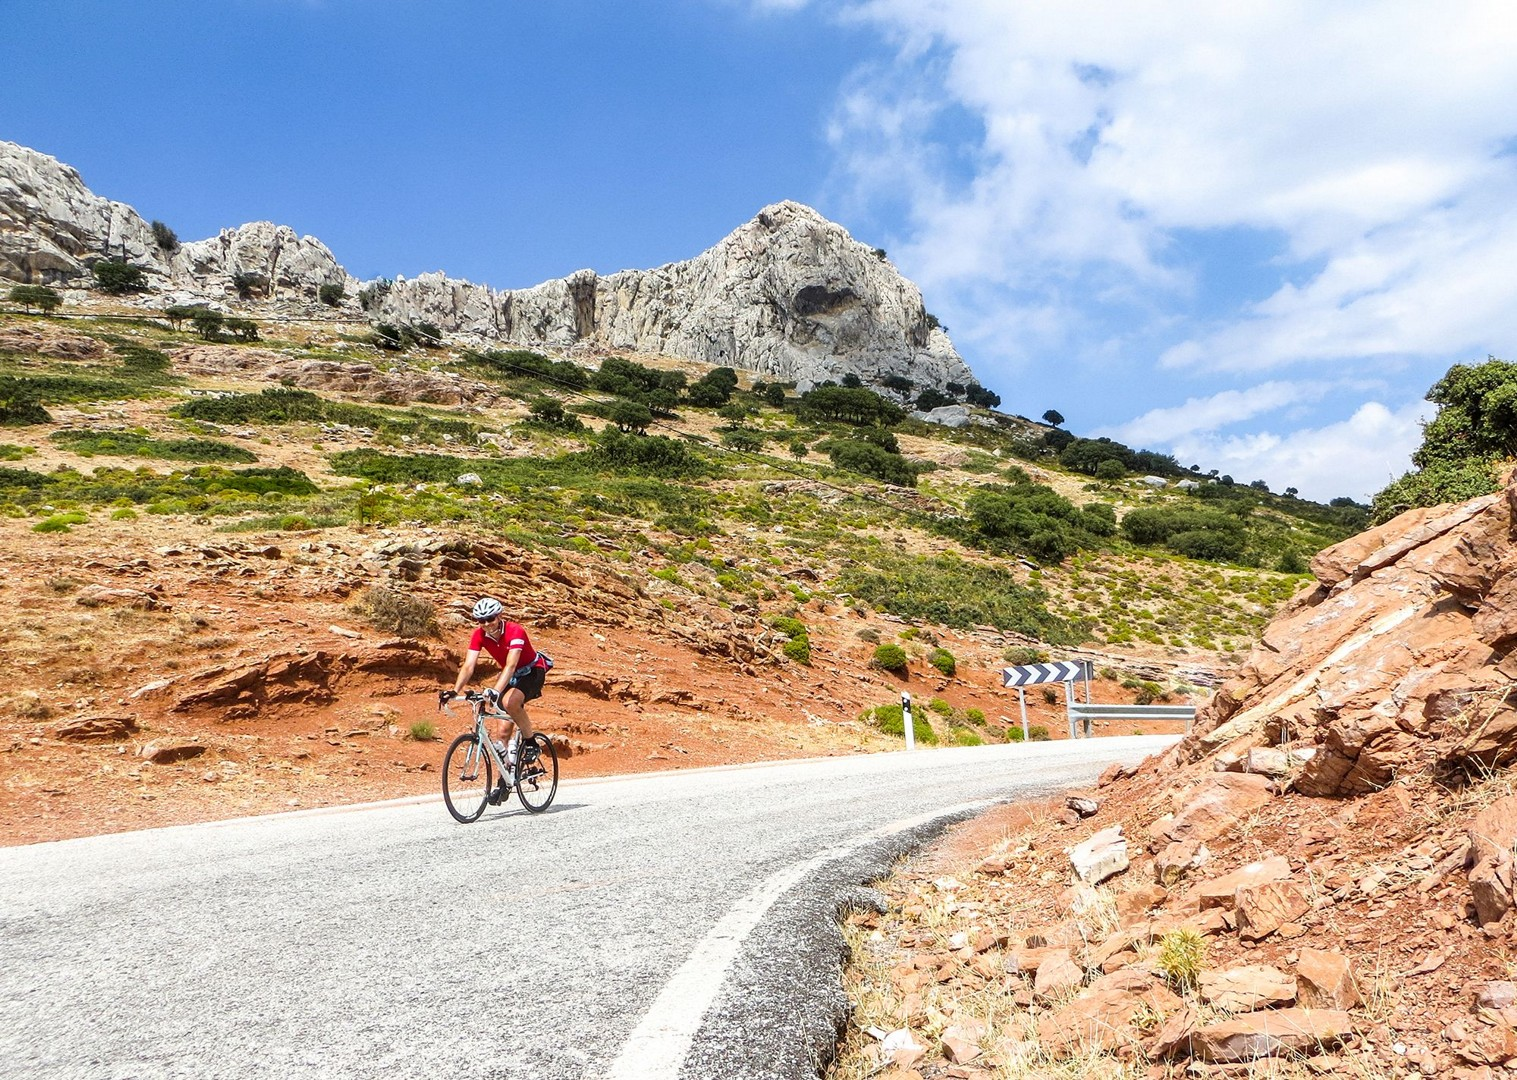 21-days-guided-road-cycling-holiday-basque-country-to-andalucia-spain.jpg - Spain - Basque Country to Andalucia - North to South (21 Days) - Guided Road Cycling Holiday - Road Cycling